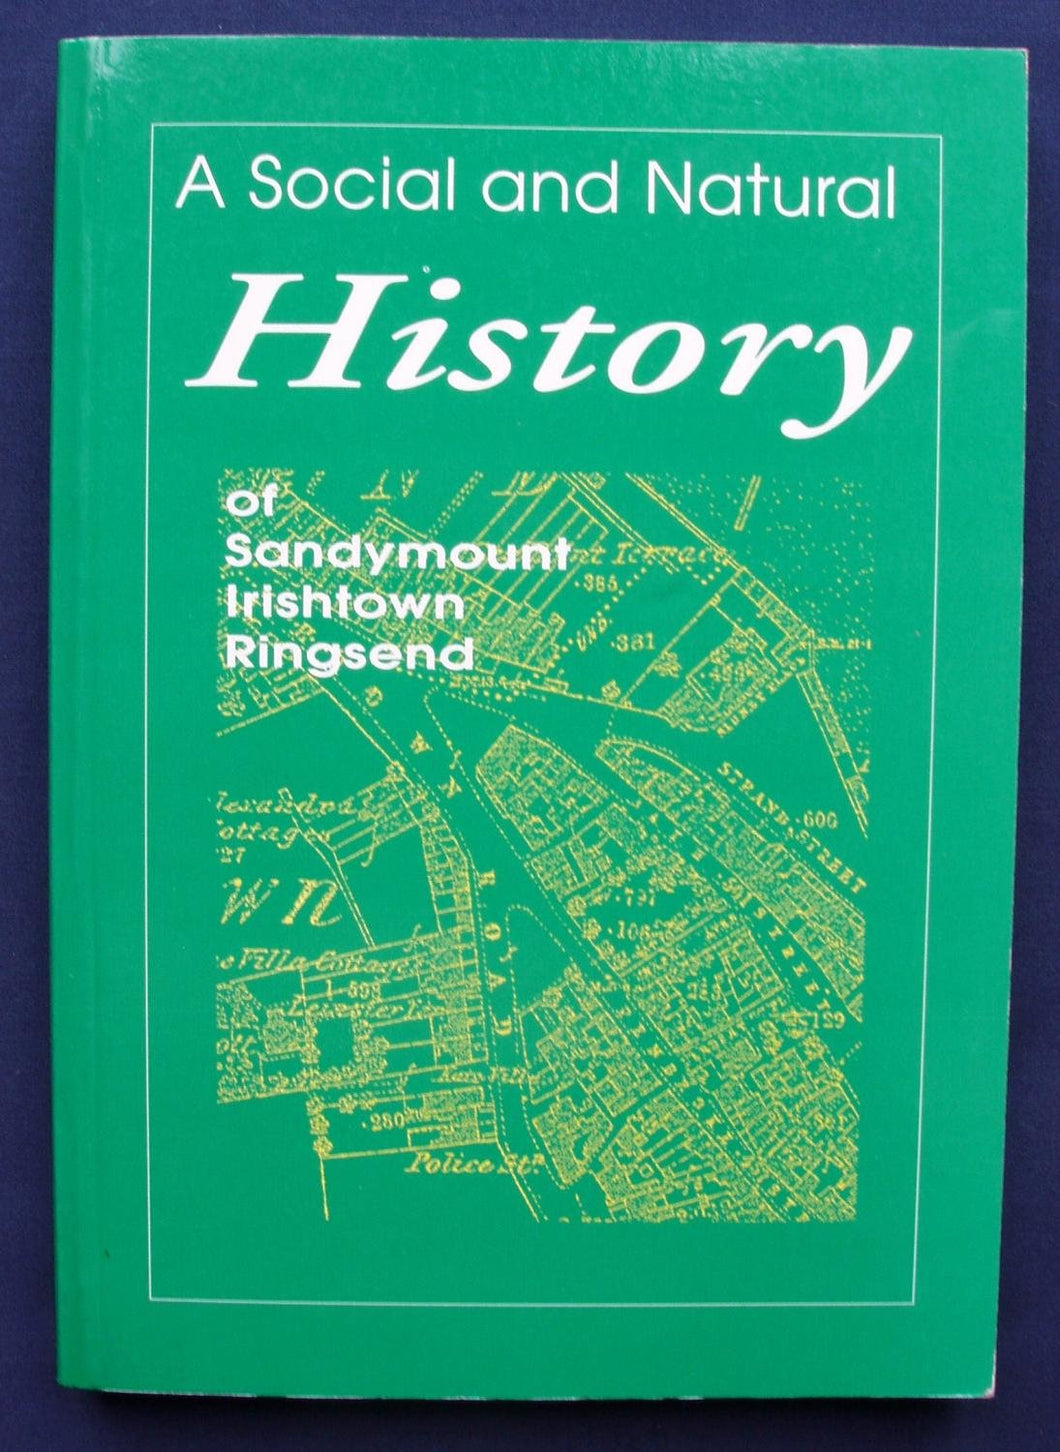 A Local History of Sandymount, Irishtown, Ringsend - A Social and Natural History of Our Area